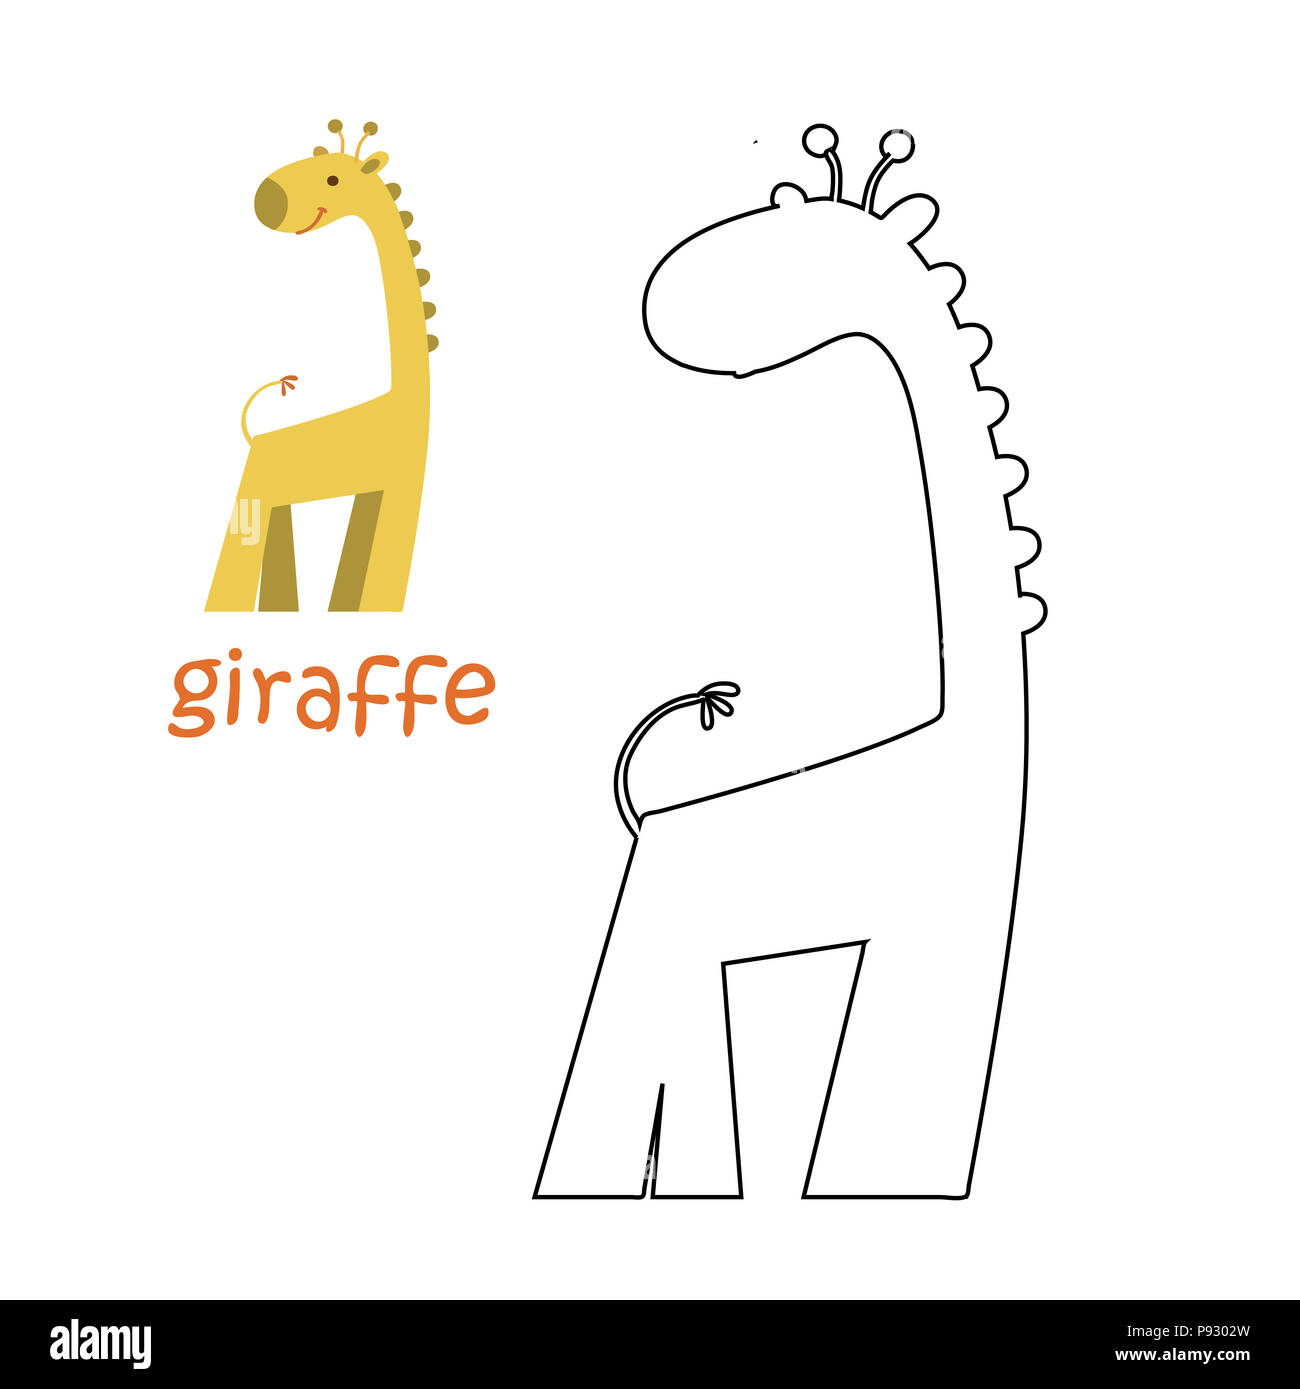 Livre De Coloriage Pour Les Enfants Coloriage Girafe Illustration Set Photo Stock Alamy